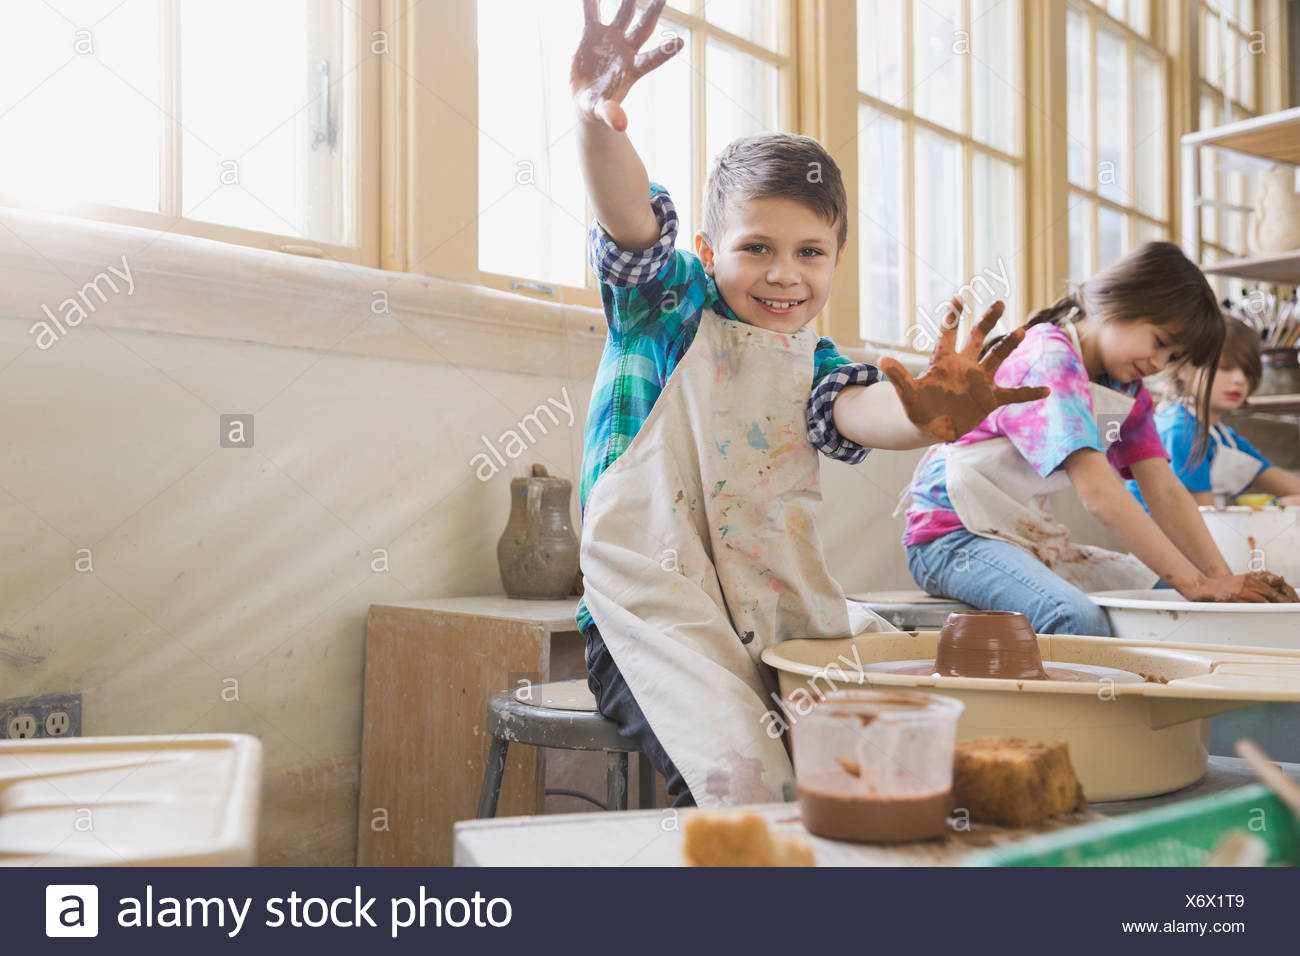 Portrait of boy showing palms in pottery class - Stock Image